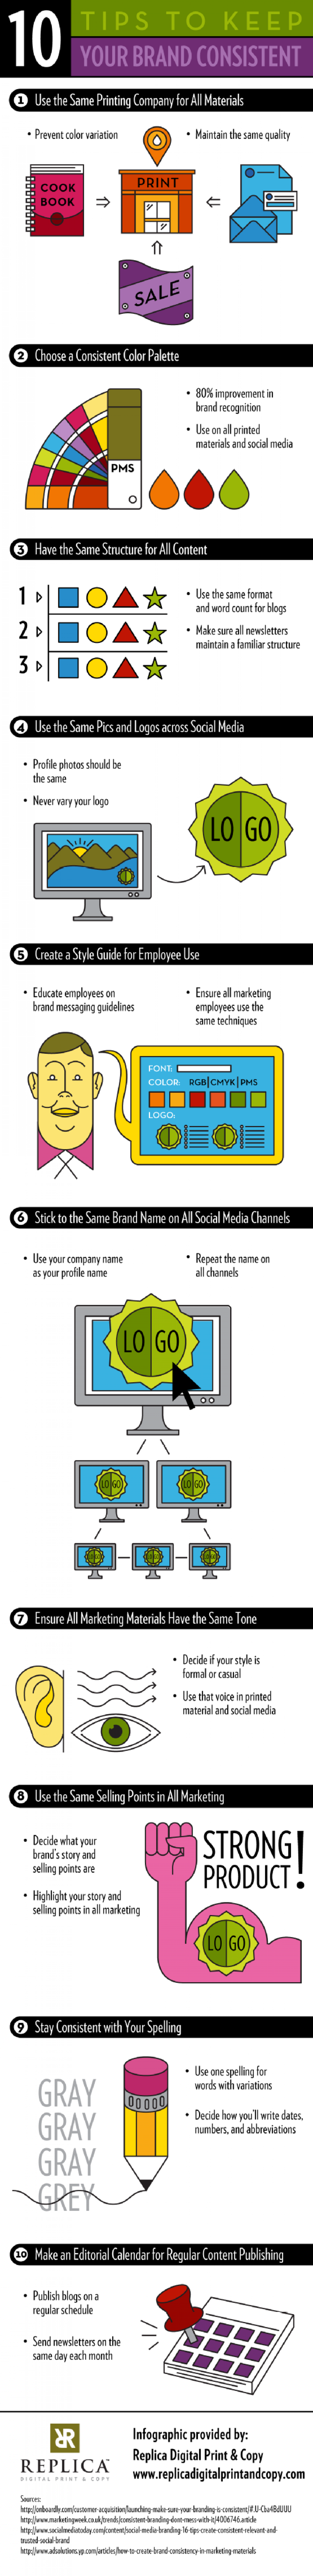 10 Tips to Keep Your Brand Consistent Infographic